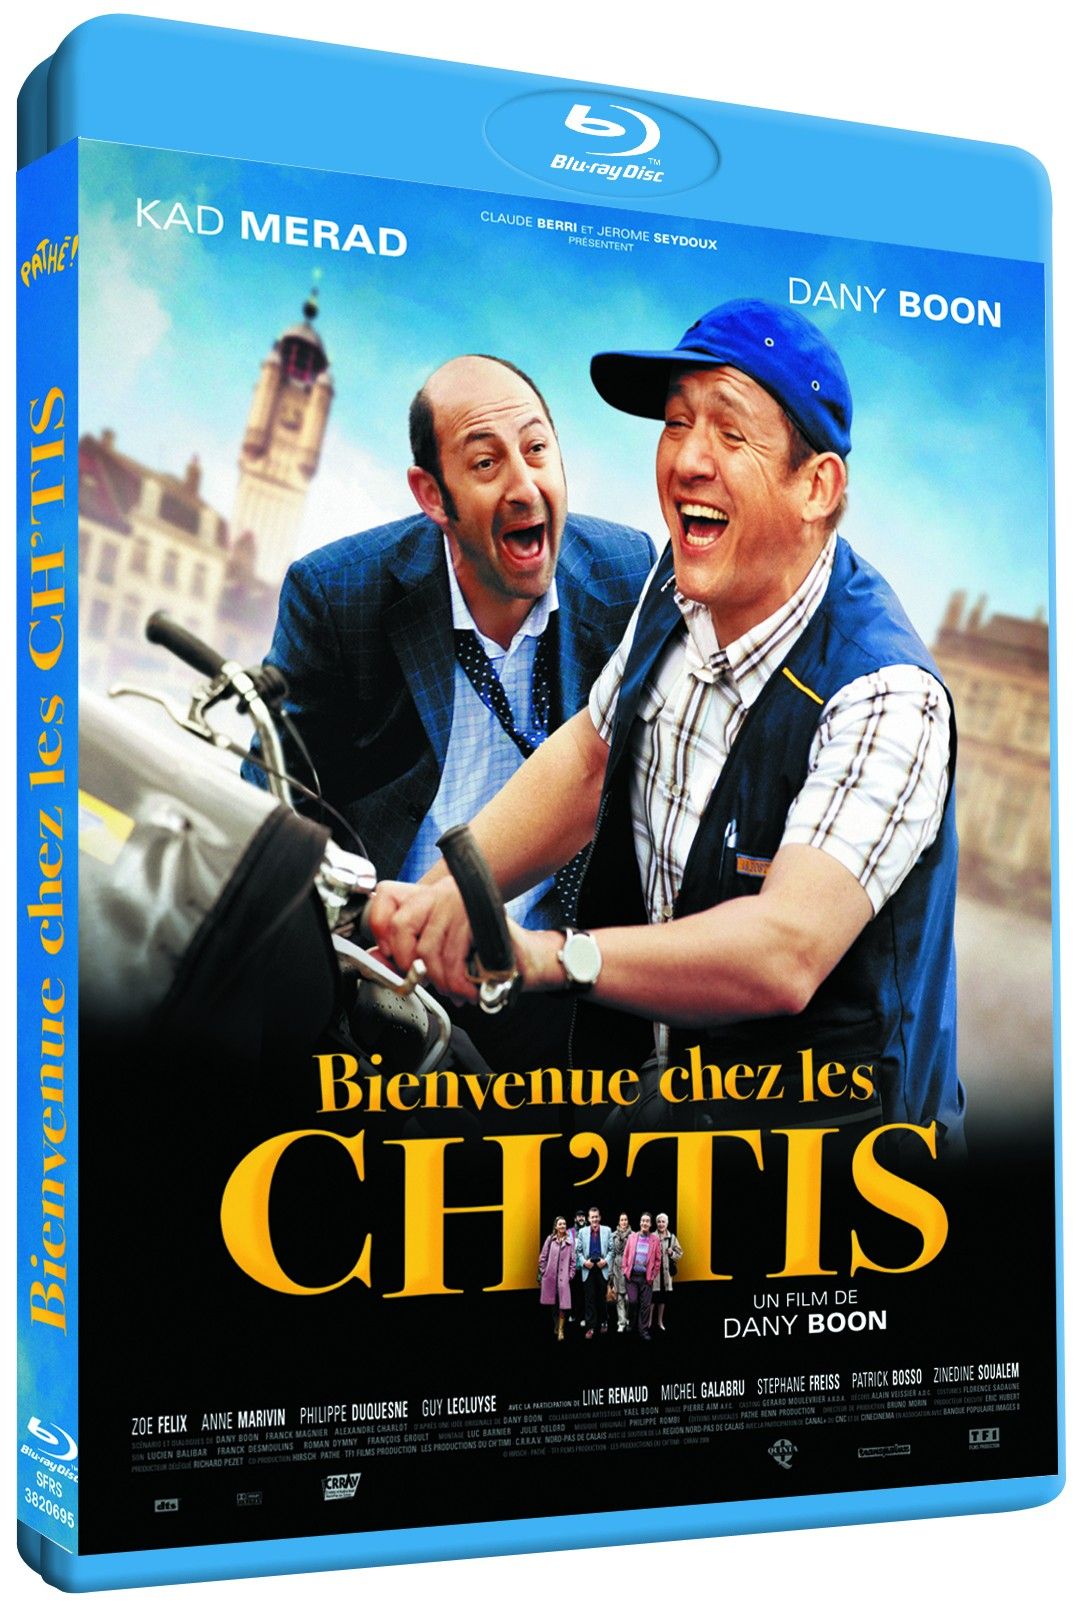 watch 2008 bienvenue chez les ch tis full movies online helpertruth. Black Bedroom Furniture Sets. Home Design Ideas